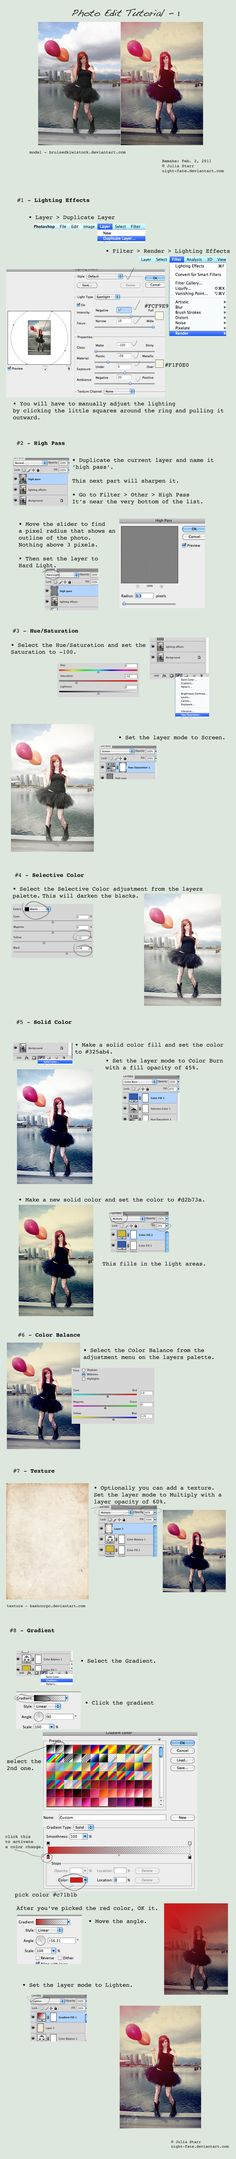 photo edit tutorial - 1 by `night-fate on deviantART